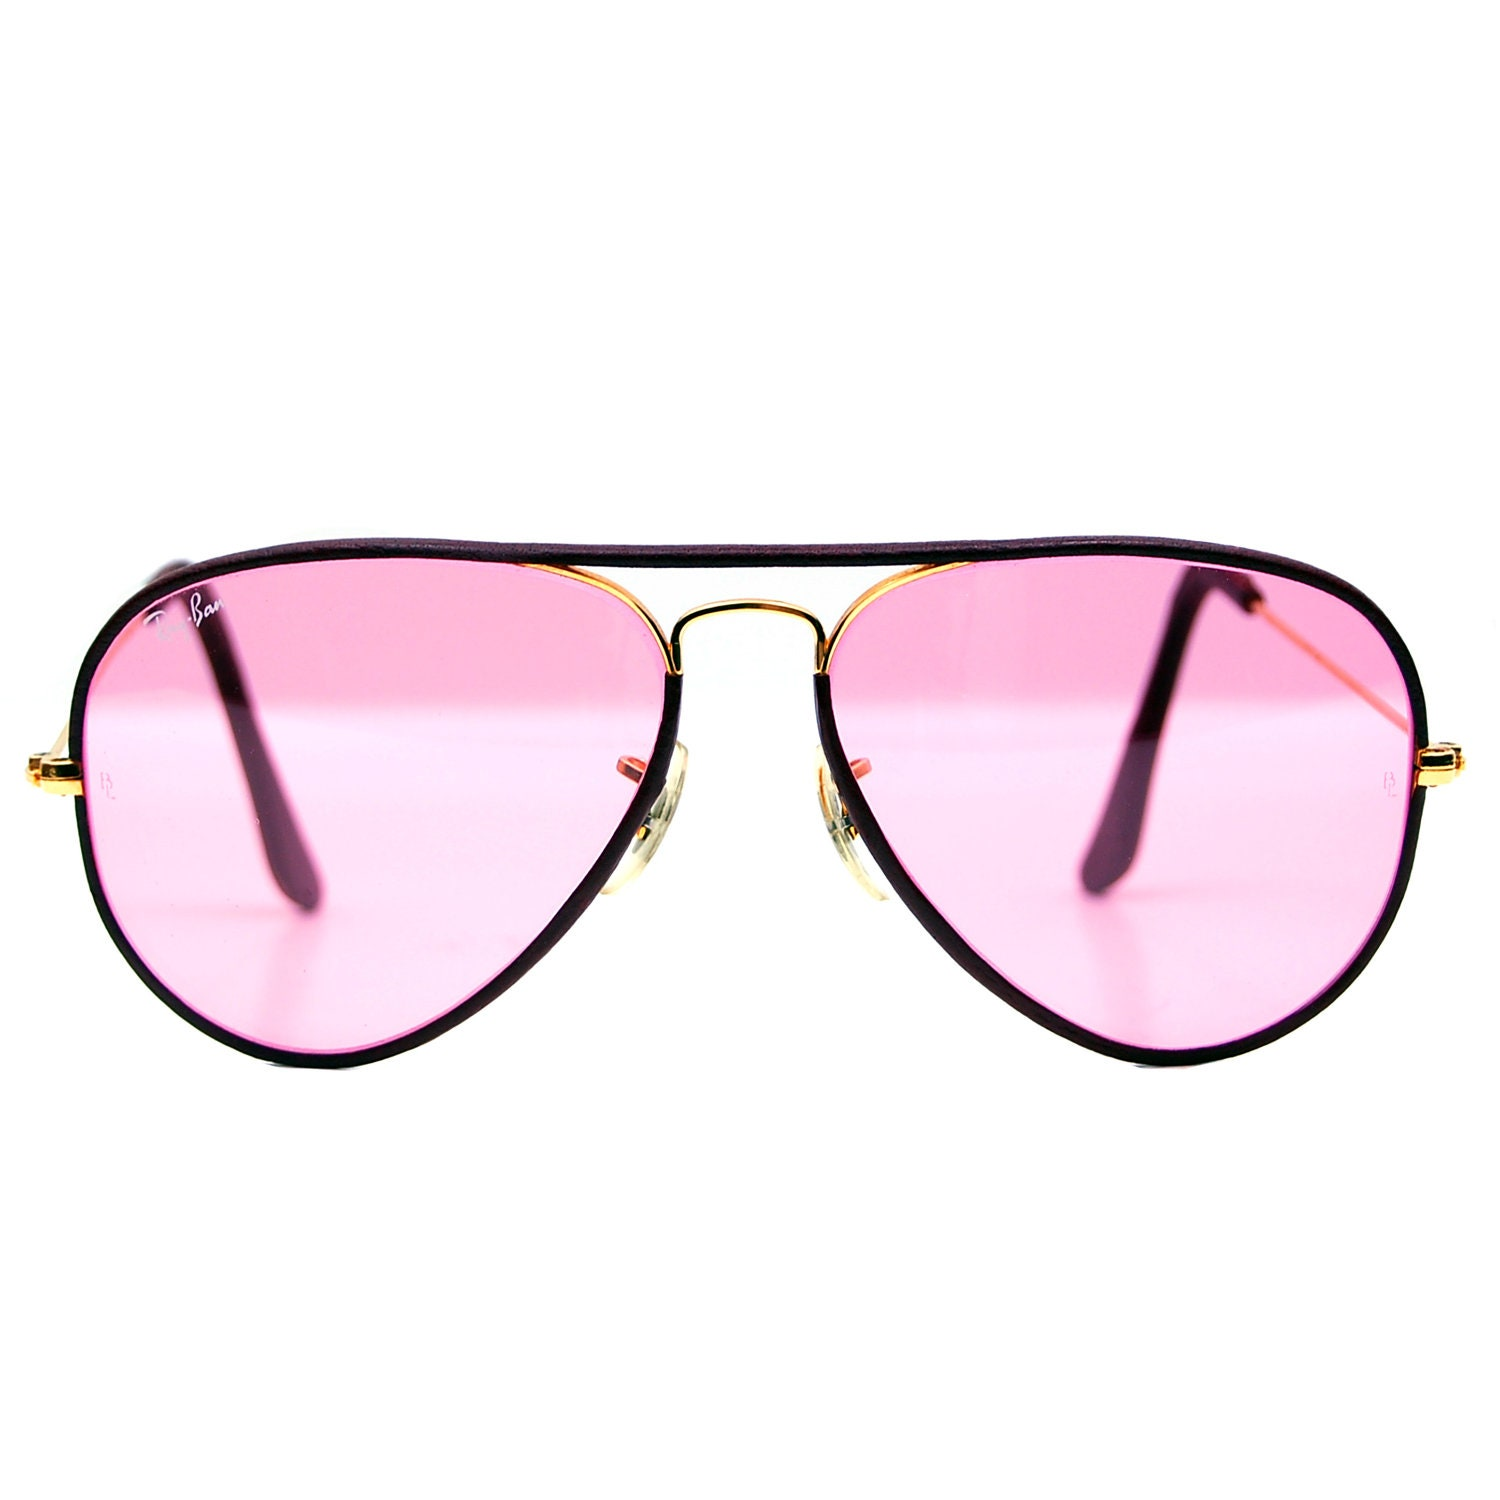 8473643a3e5 Ray Ban Leathers Bausch